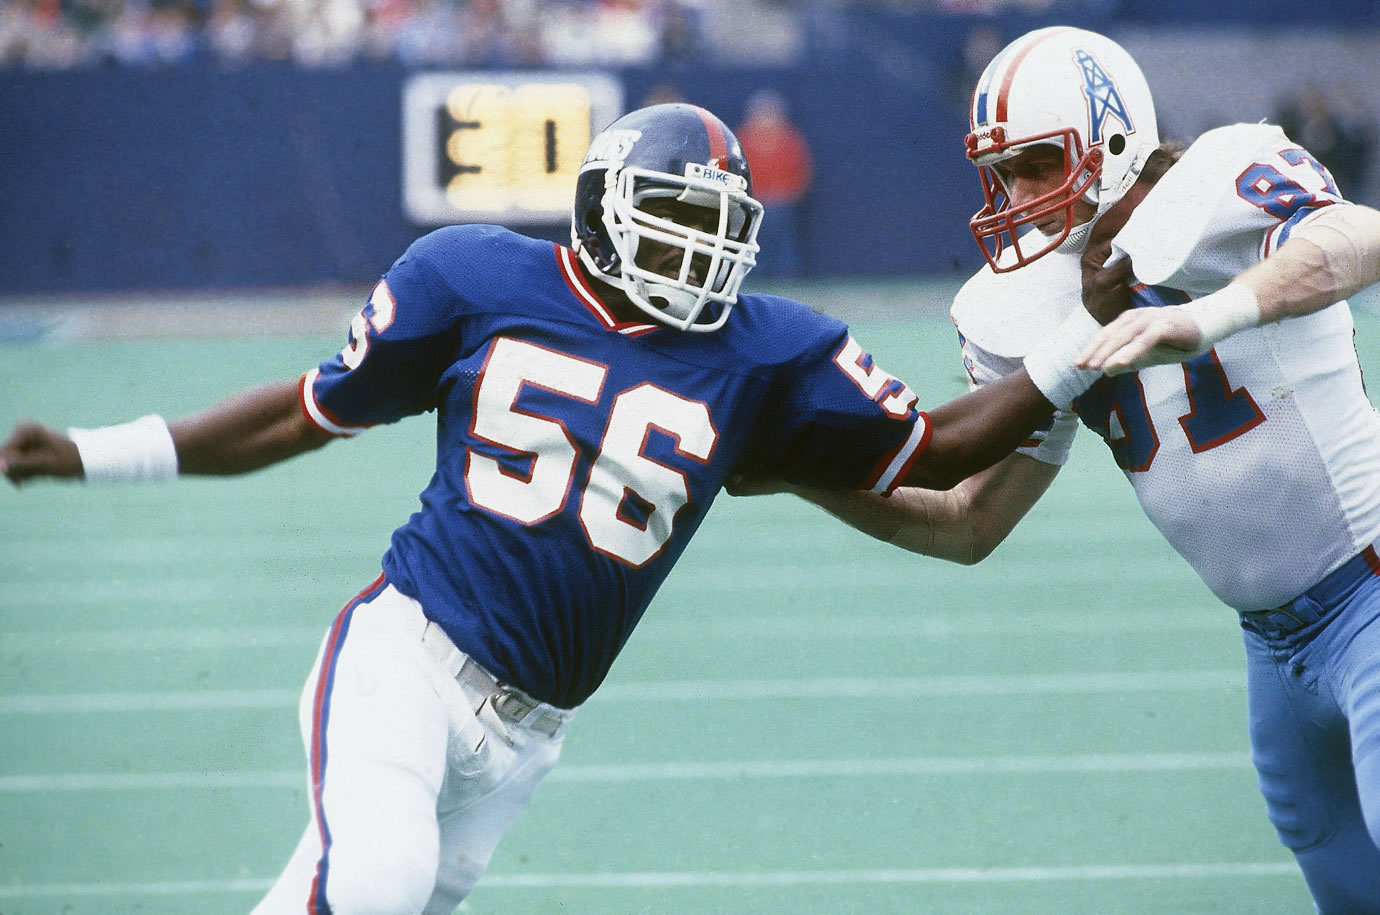 Taylor became the first true pass-rushing linebacker when Bill Parcells and Bill Belichick set him loose on the NFL in the early 1980s, and few have done it better since. Taylor played with an unbeatable combination of strength, speed and determination, and even when his off-field demons trapped him, he still brought it with authority on the field. Few defenders have ever had better seasons than Taylor's 1986, when he registered 20.5 sacks and won the MVP award.